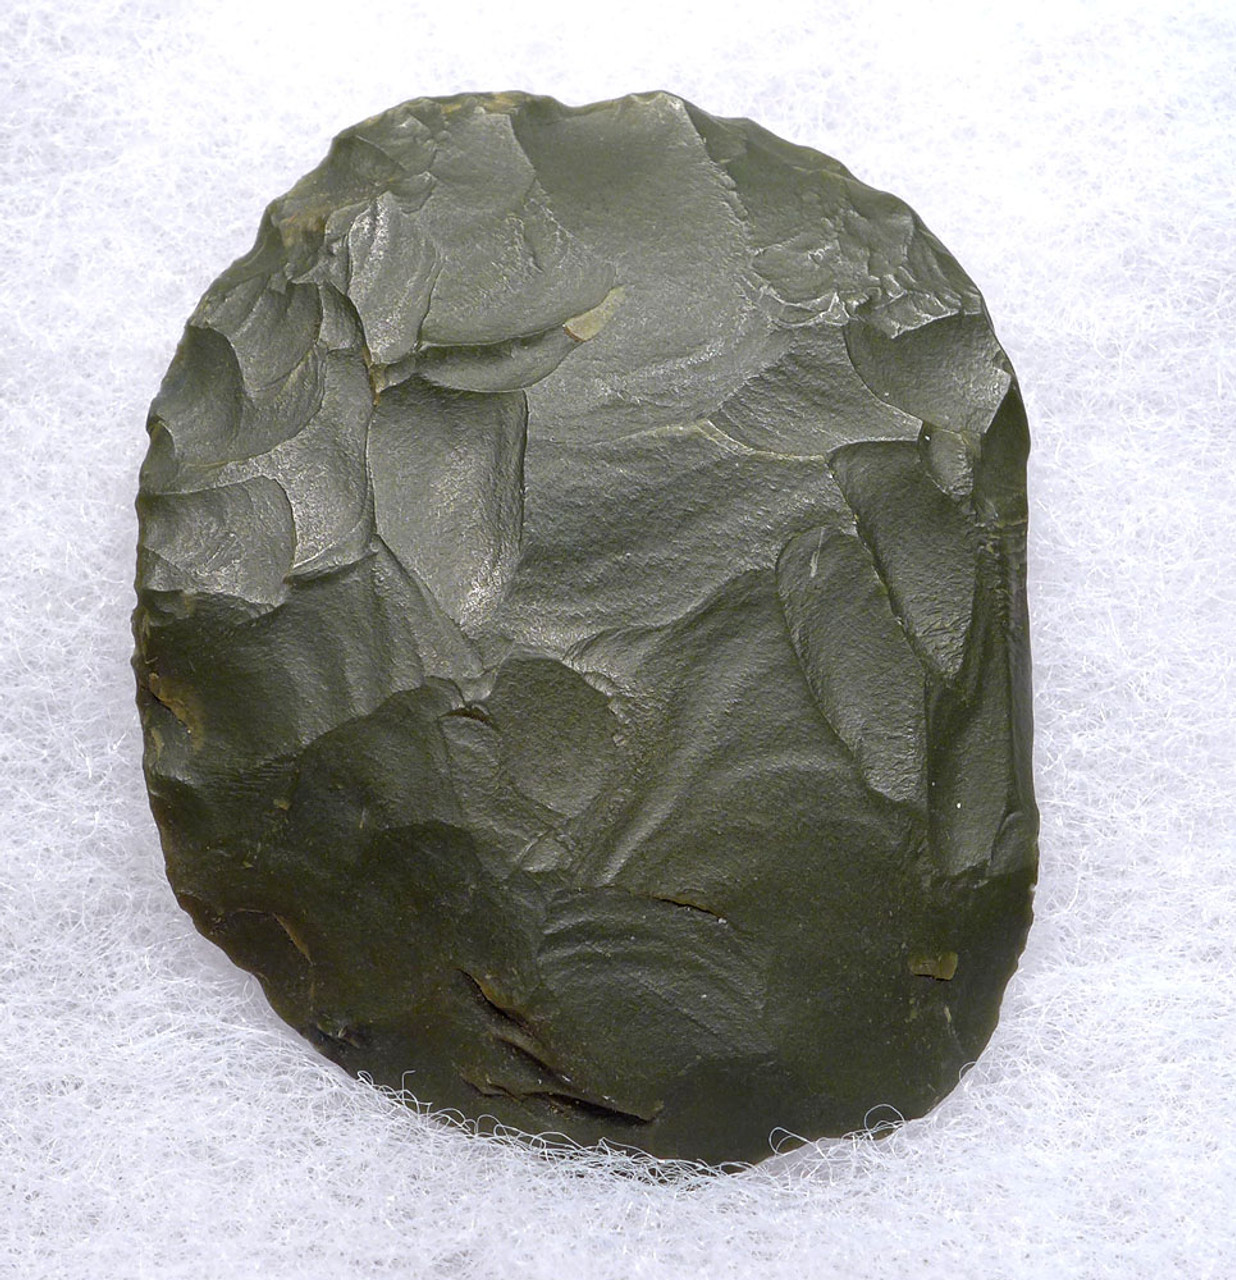 RARE GREEN JASPER DISCOIDAL SCRAPER FROM THE TENERIAN AFRICAN NEOLITHIC PEOPLE OF THE GREEN SAHARA  *CAP263